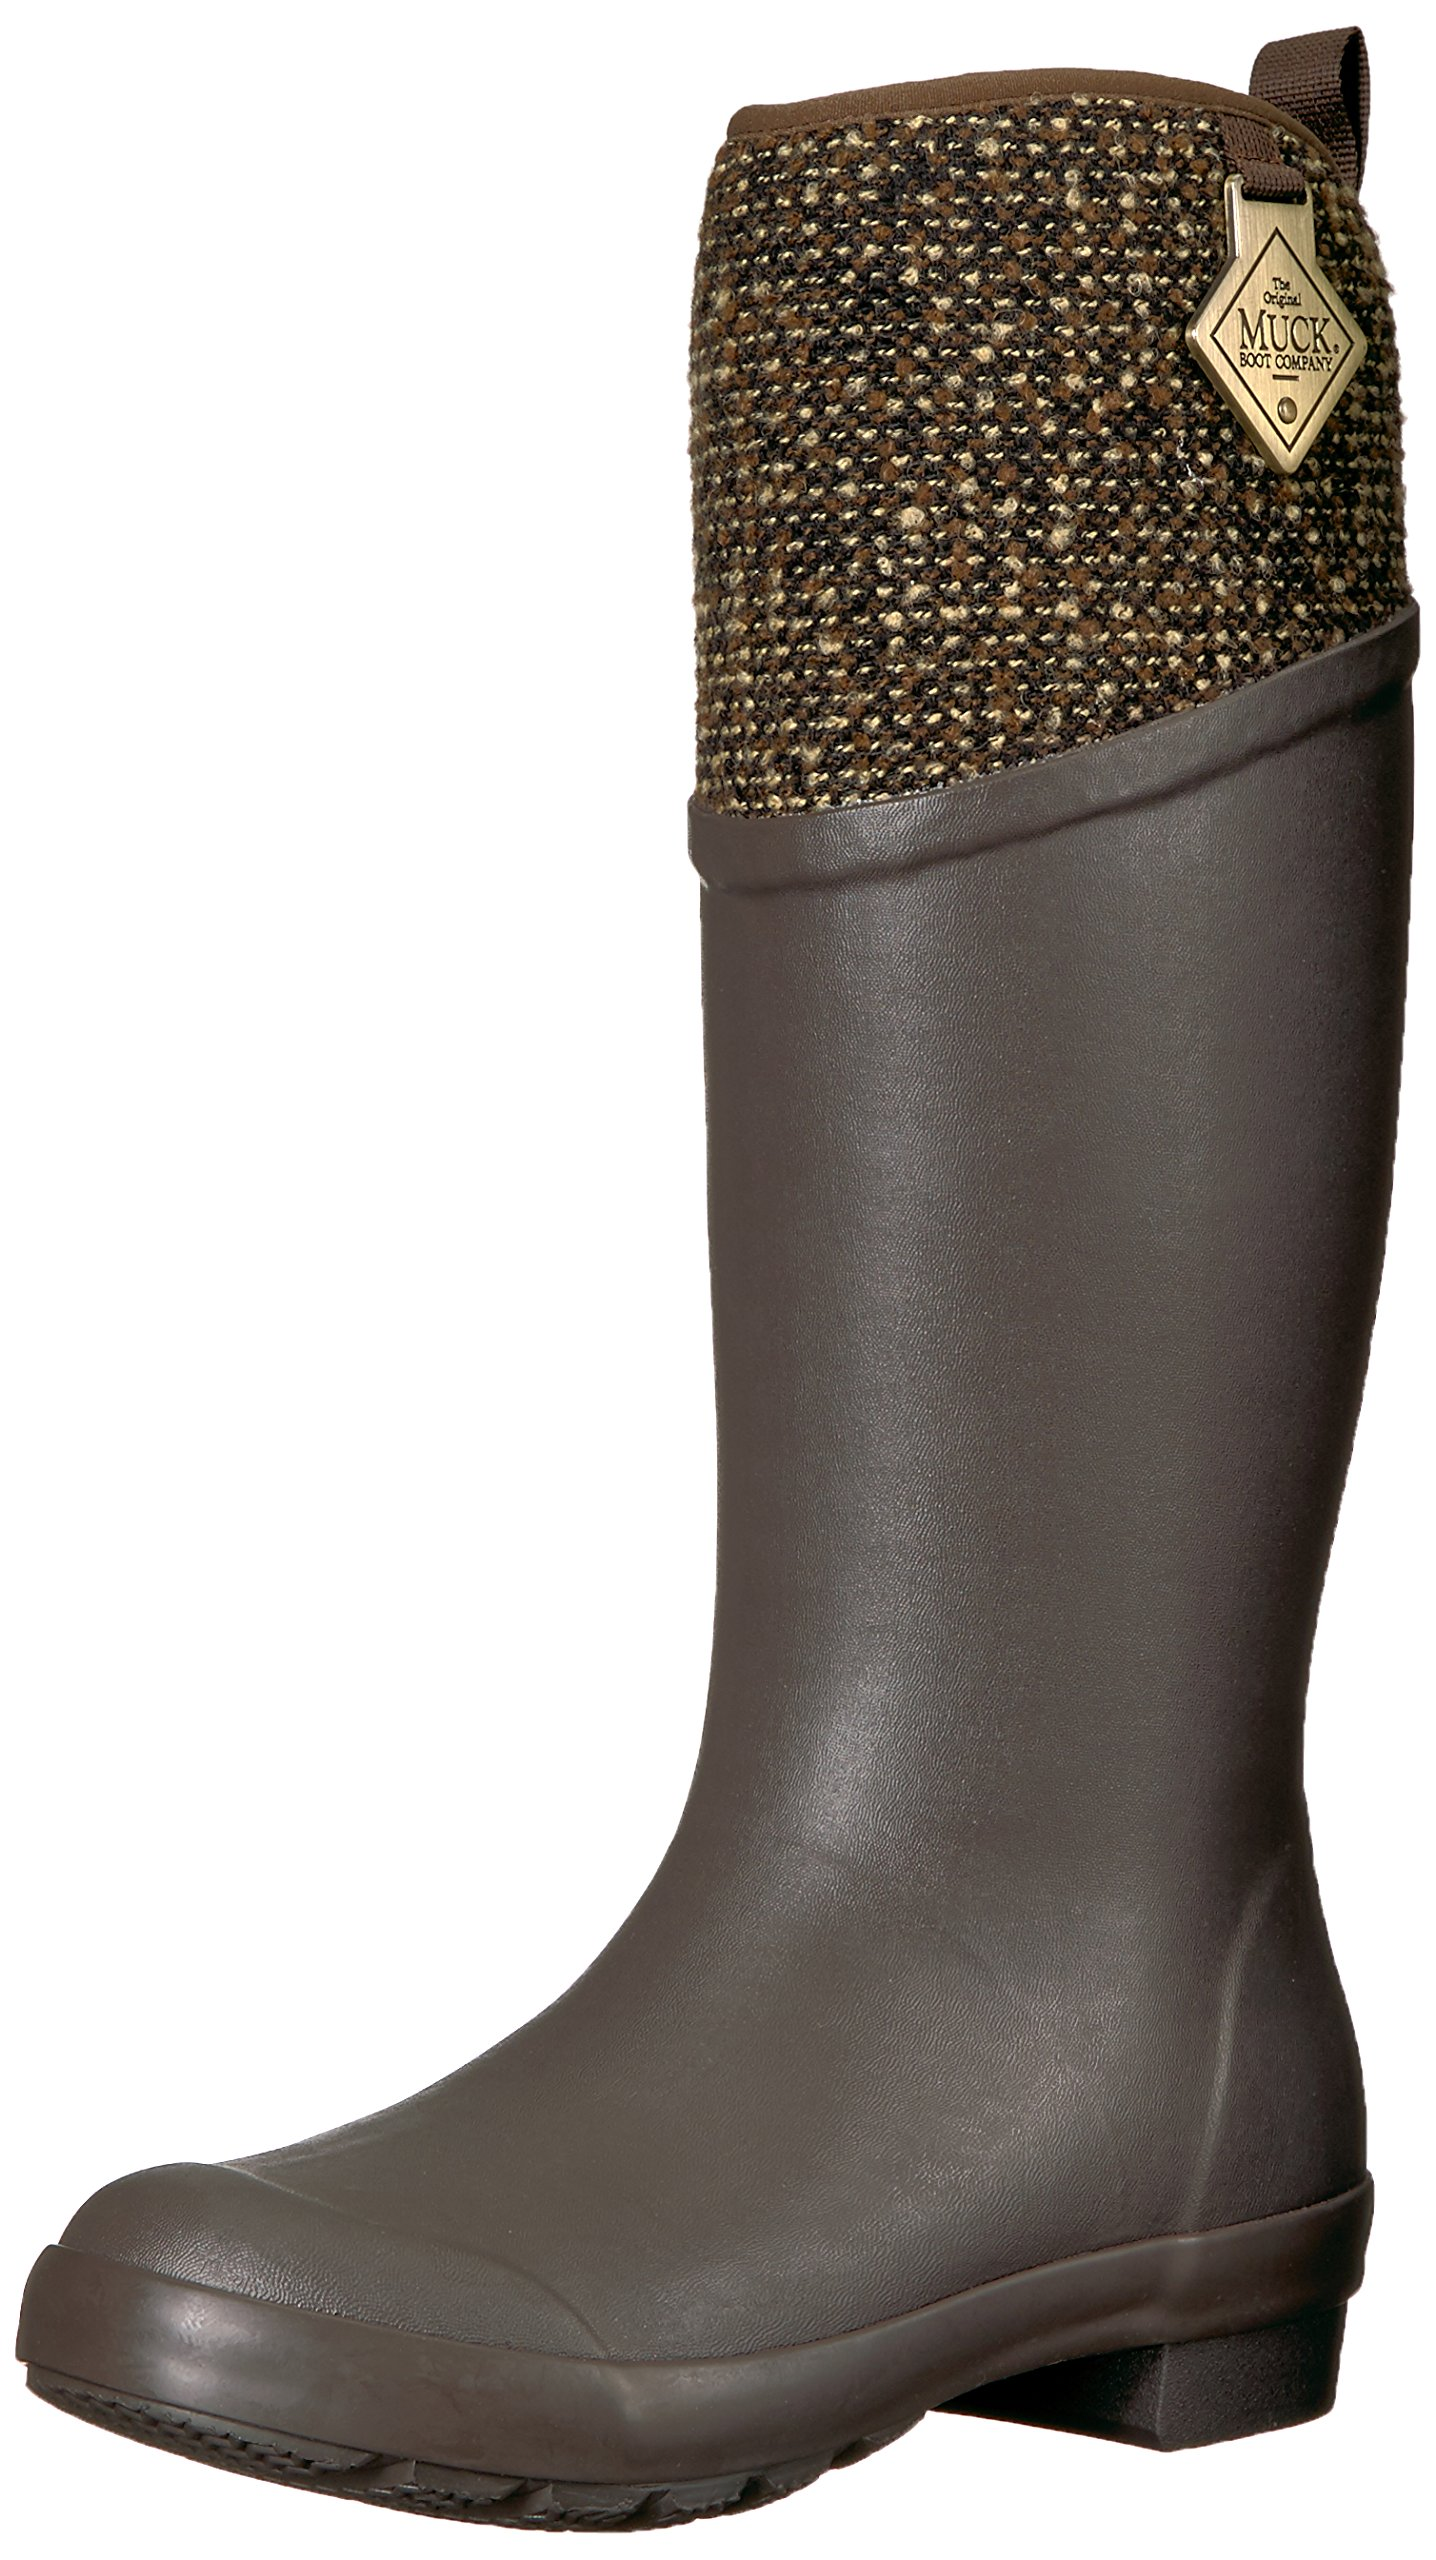 Muck Tremont Supreme Tall Rubber & Knit Women's Cold Weather Boots